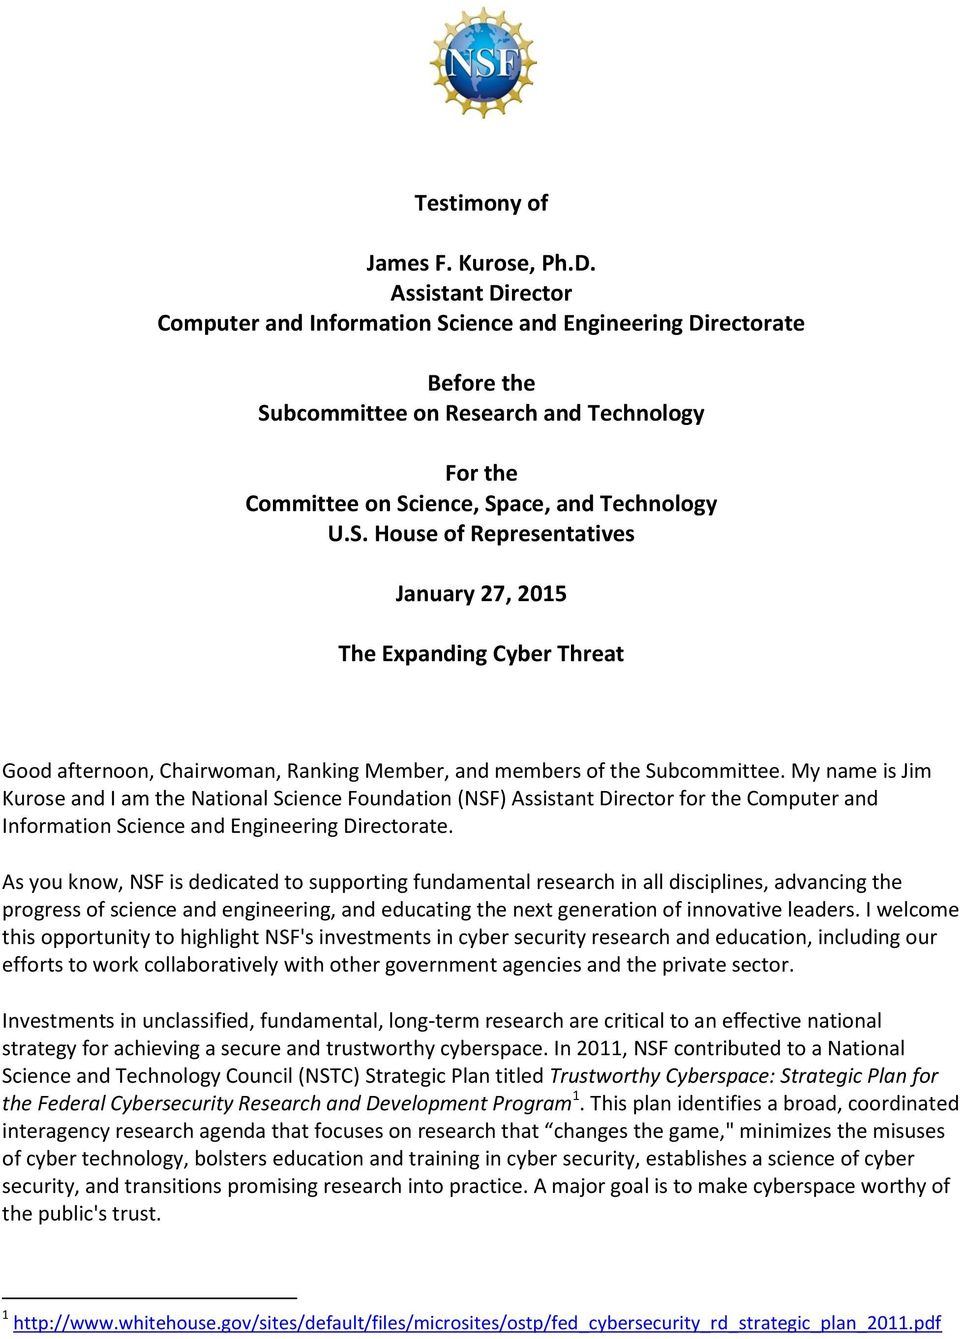 My name is Jim Kurose and I am the National Science Foundation (NSF) Assistant Director for the Computer and Information Science and Engineering Directorate.